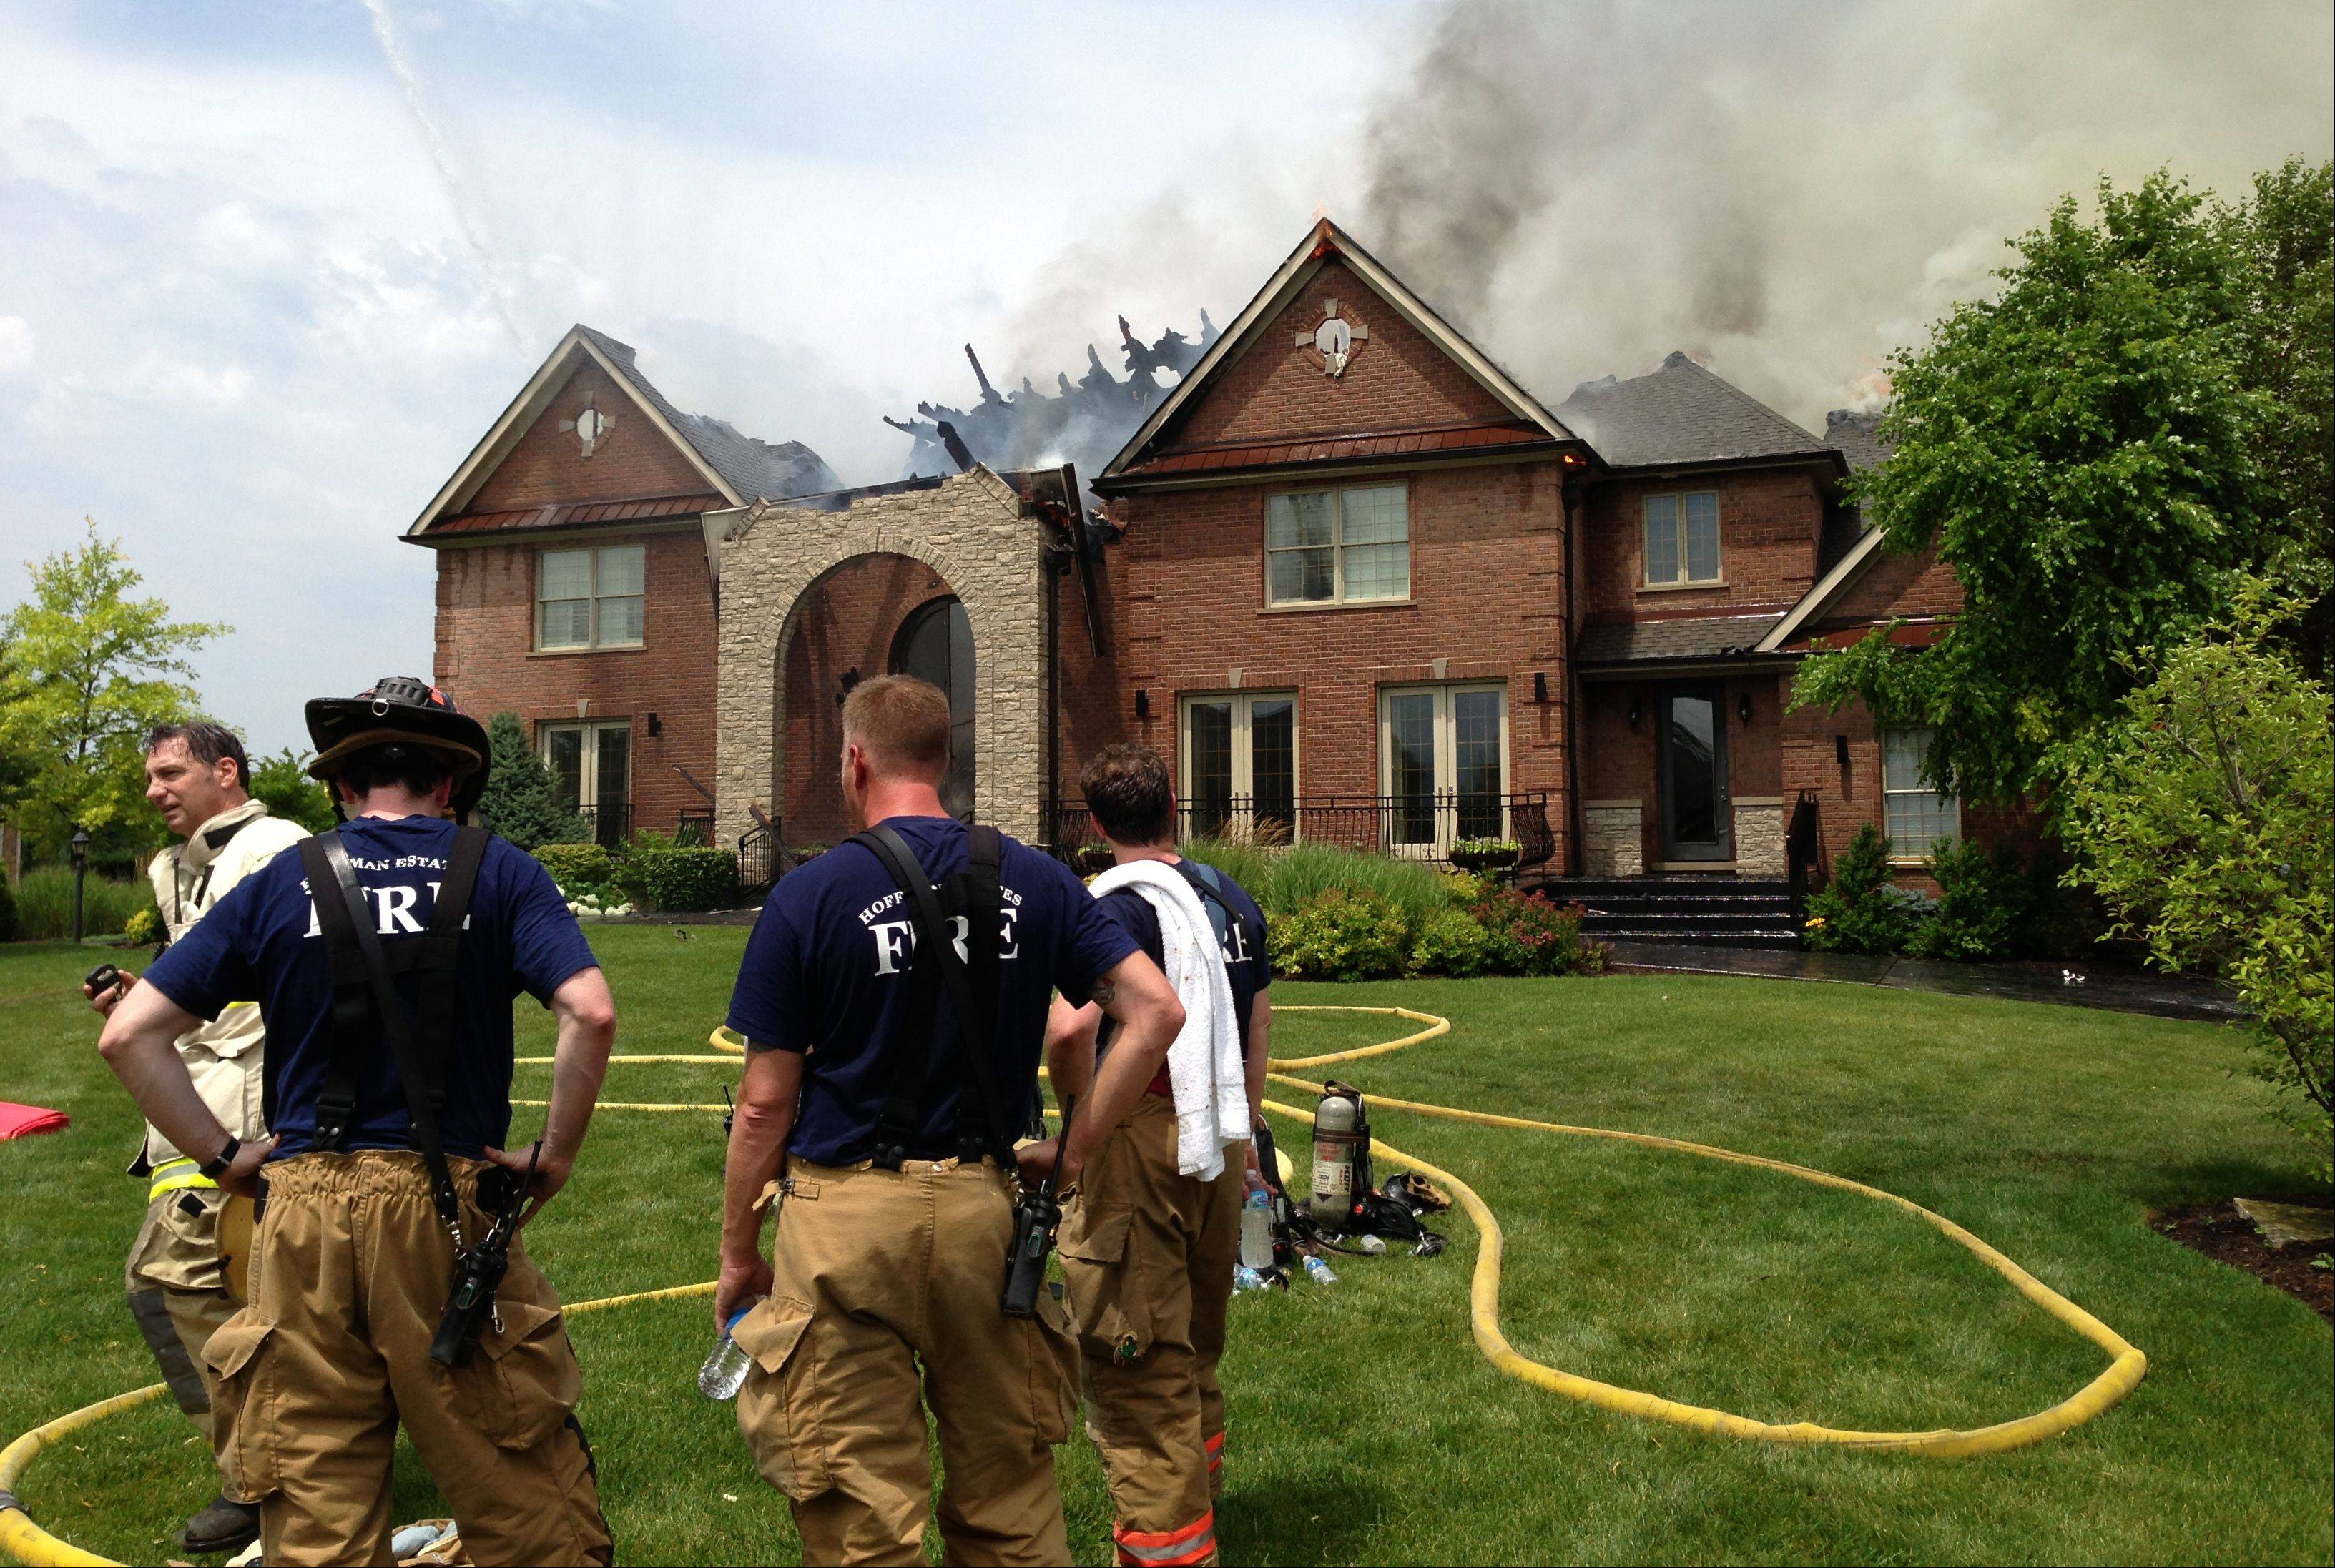 Firefighters at the scene of a house fire at Terra Vita Drive in South Barrington.